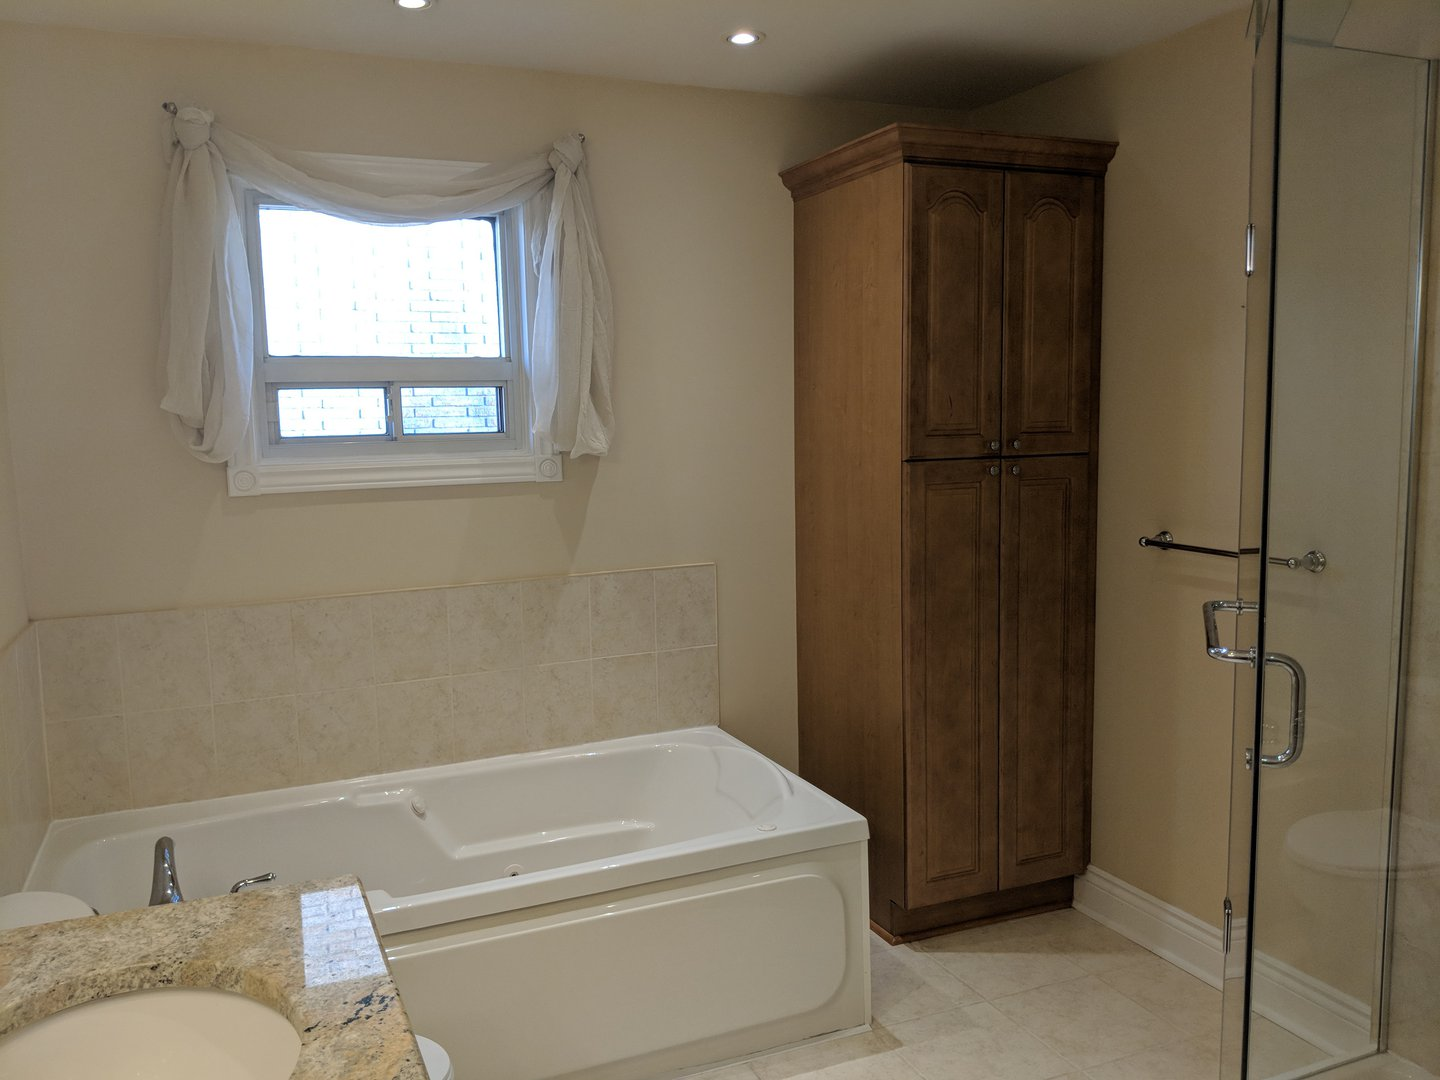 House for rent at 1162 Kipling Ave | Unit: upper, Etobicoke, ON. This is the bathroom with tile floor and natural light.